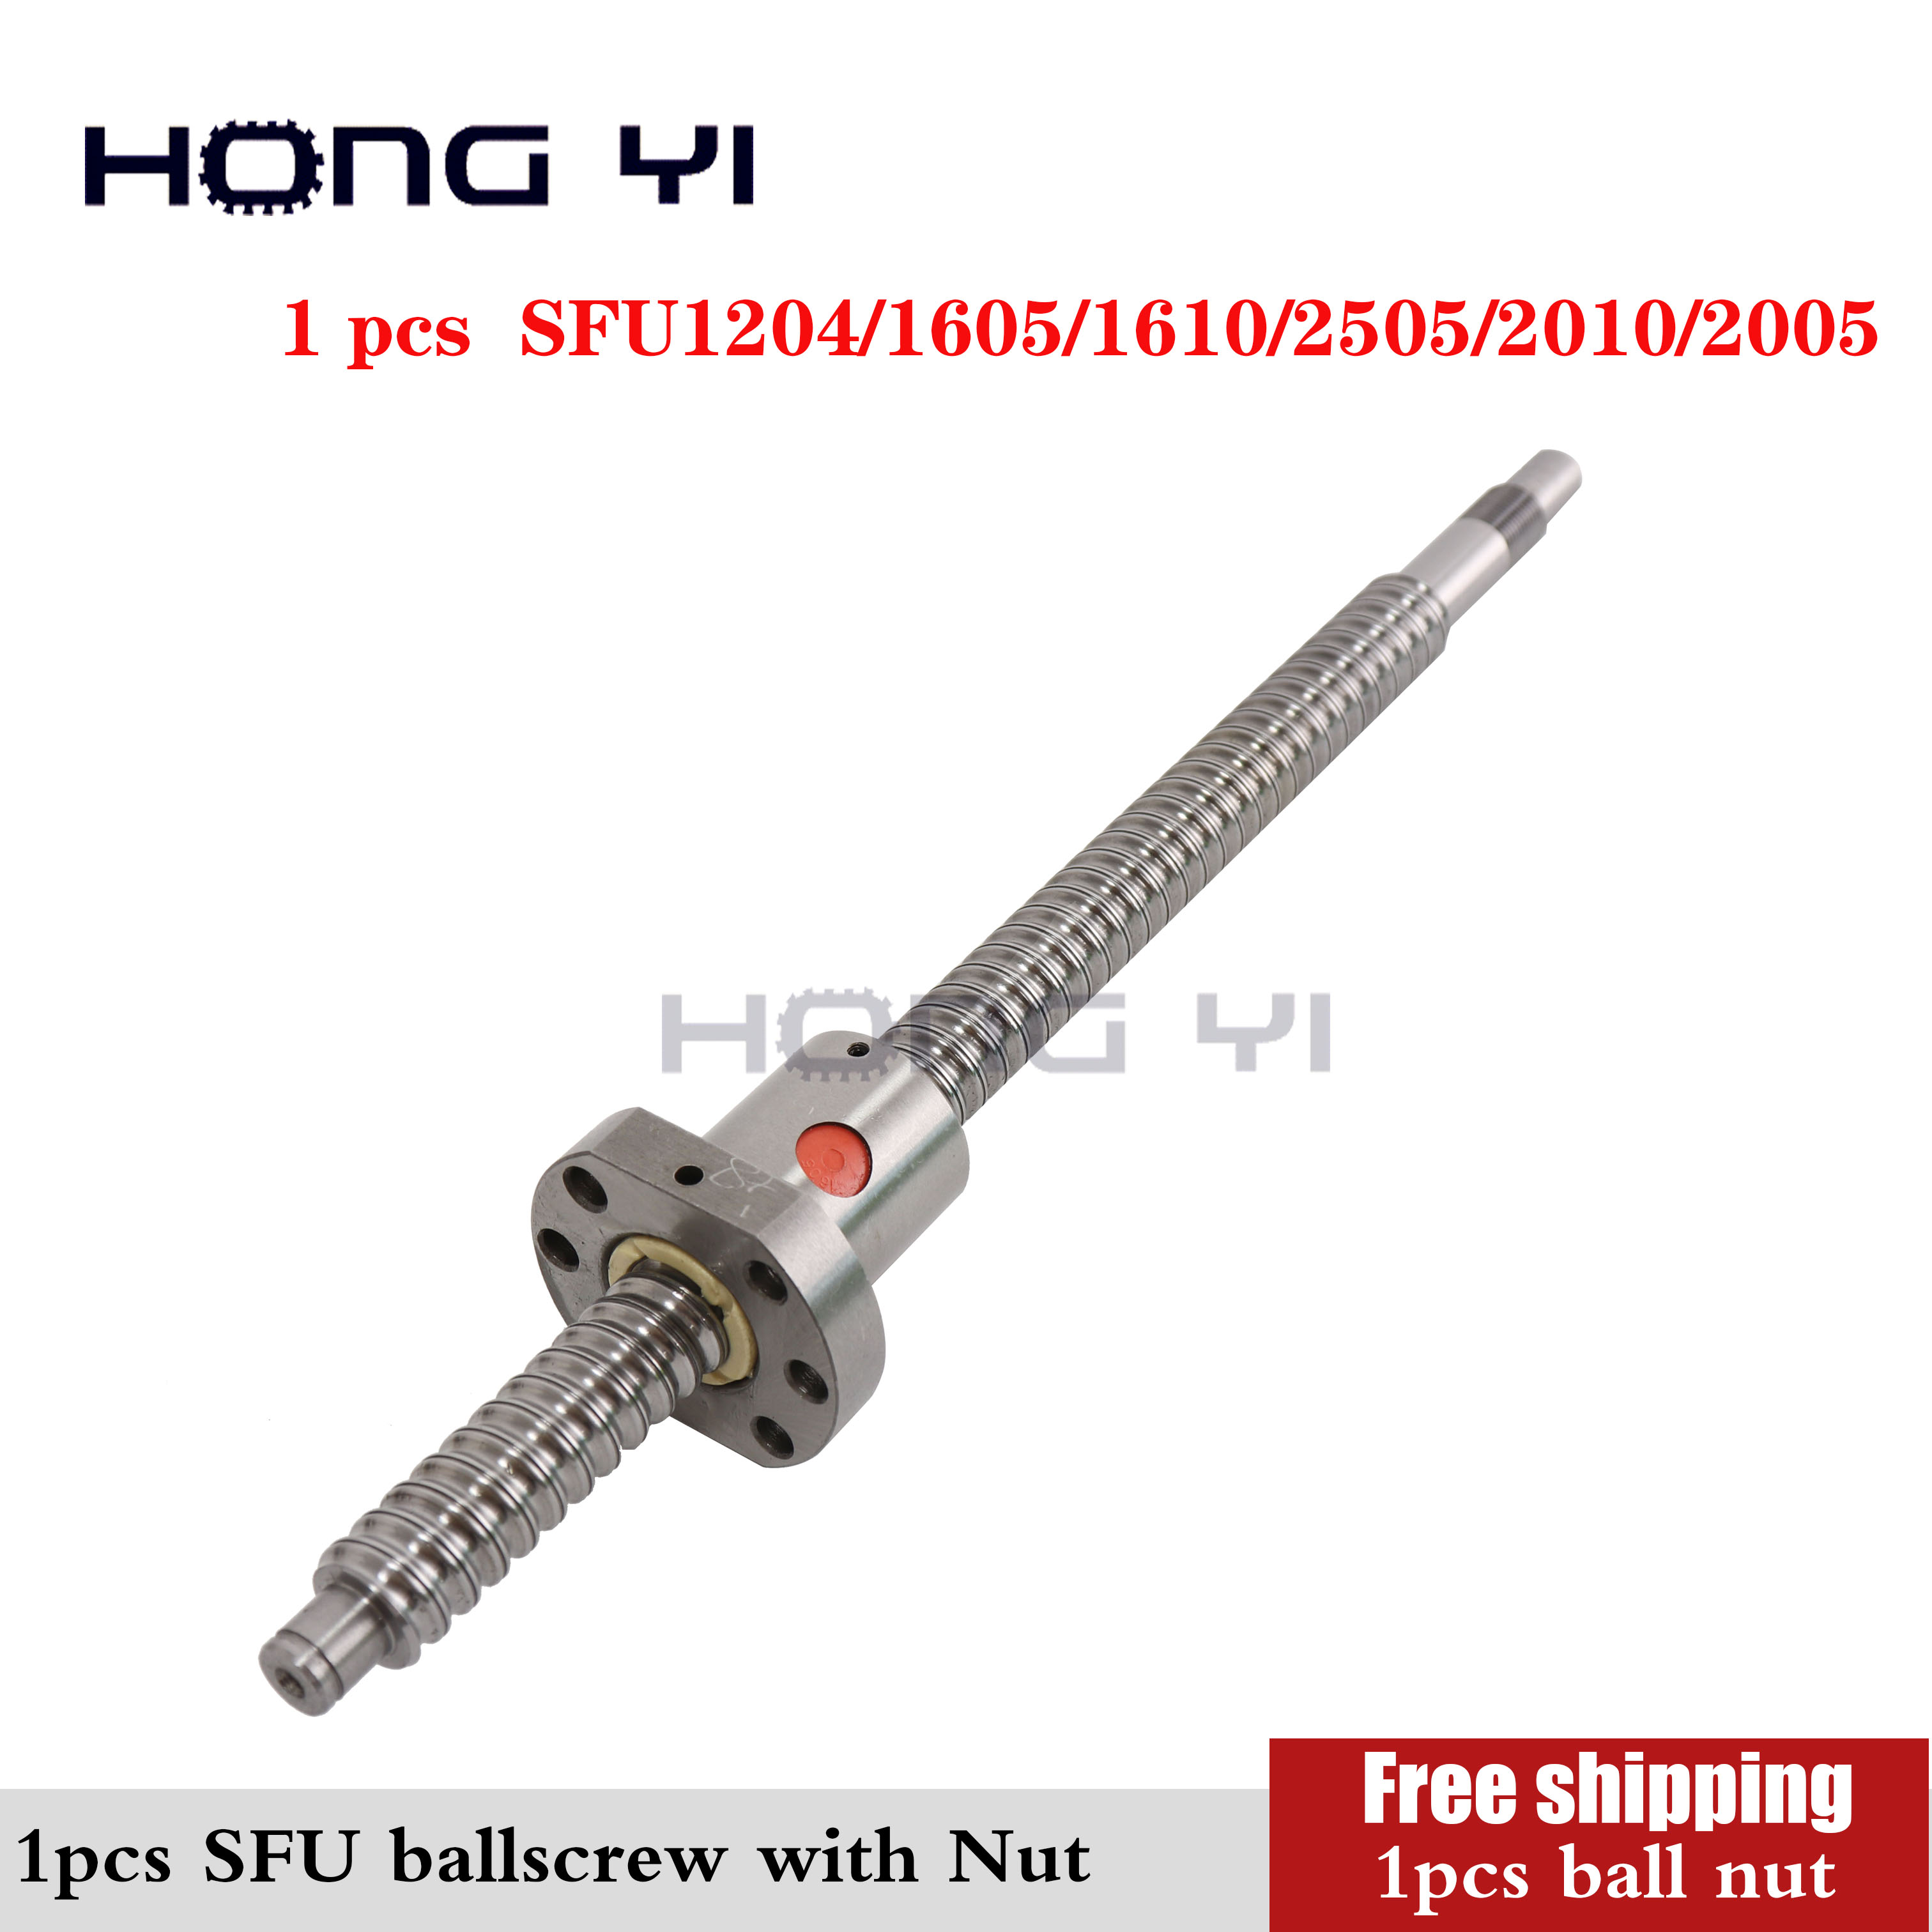 SFU1204 /1605/1610/2505/2010/2005+ Ball Screw Nut + End Processing Can Choose Length For CNC Parts Rolled Ballscrew